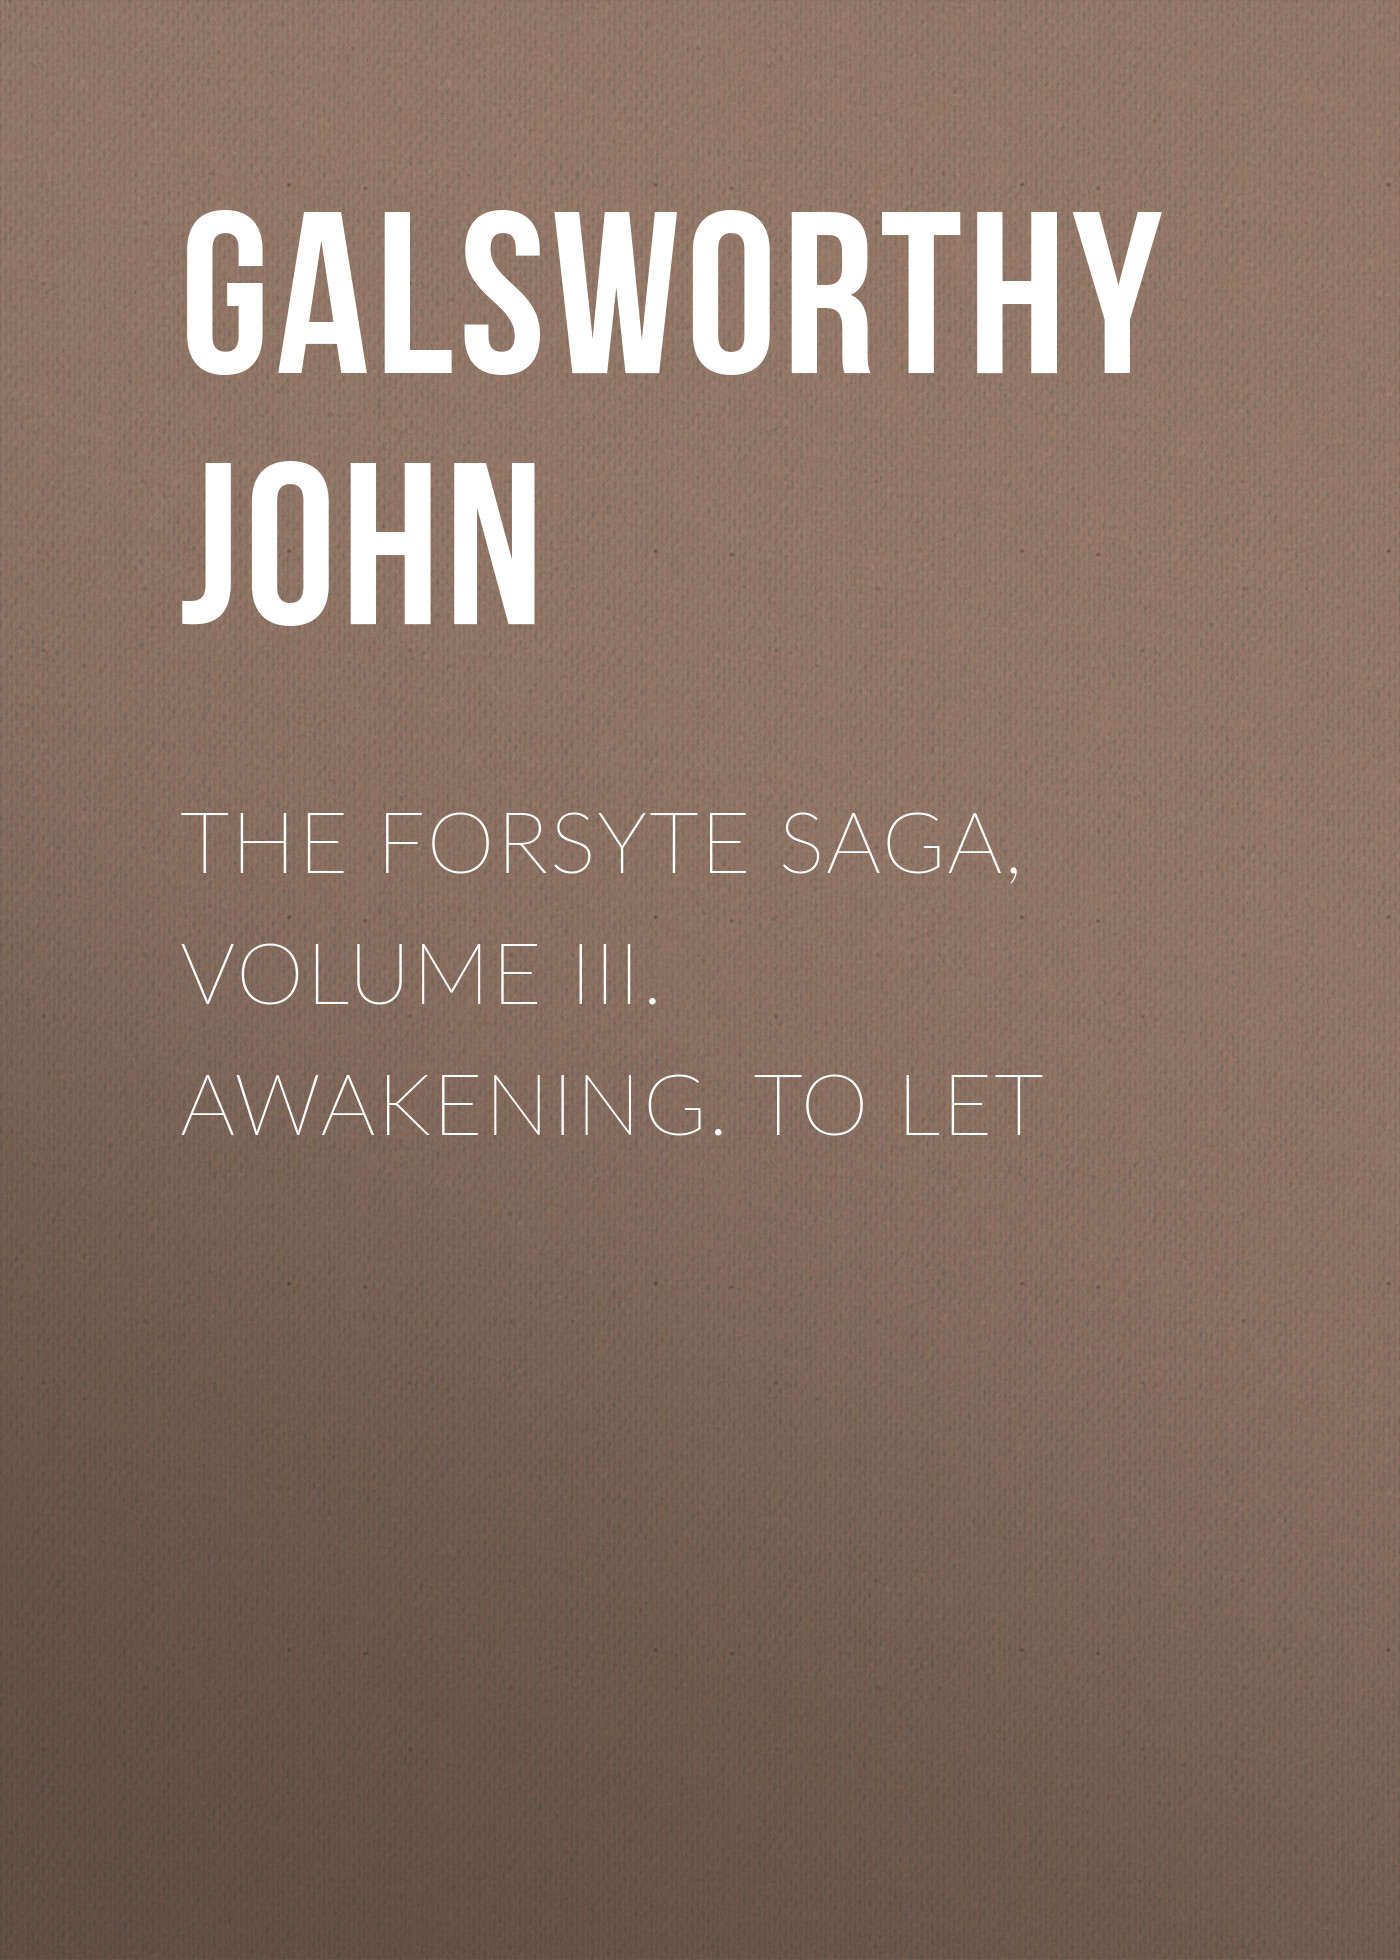 Galsworthy John The Forsyte Saga, Volume III. Awakening. To Let saga saga the beginner s guide to throwing shapes